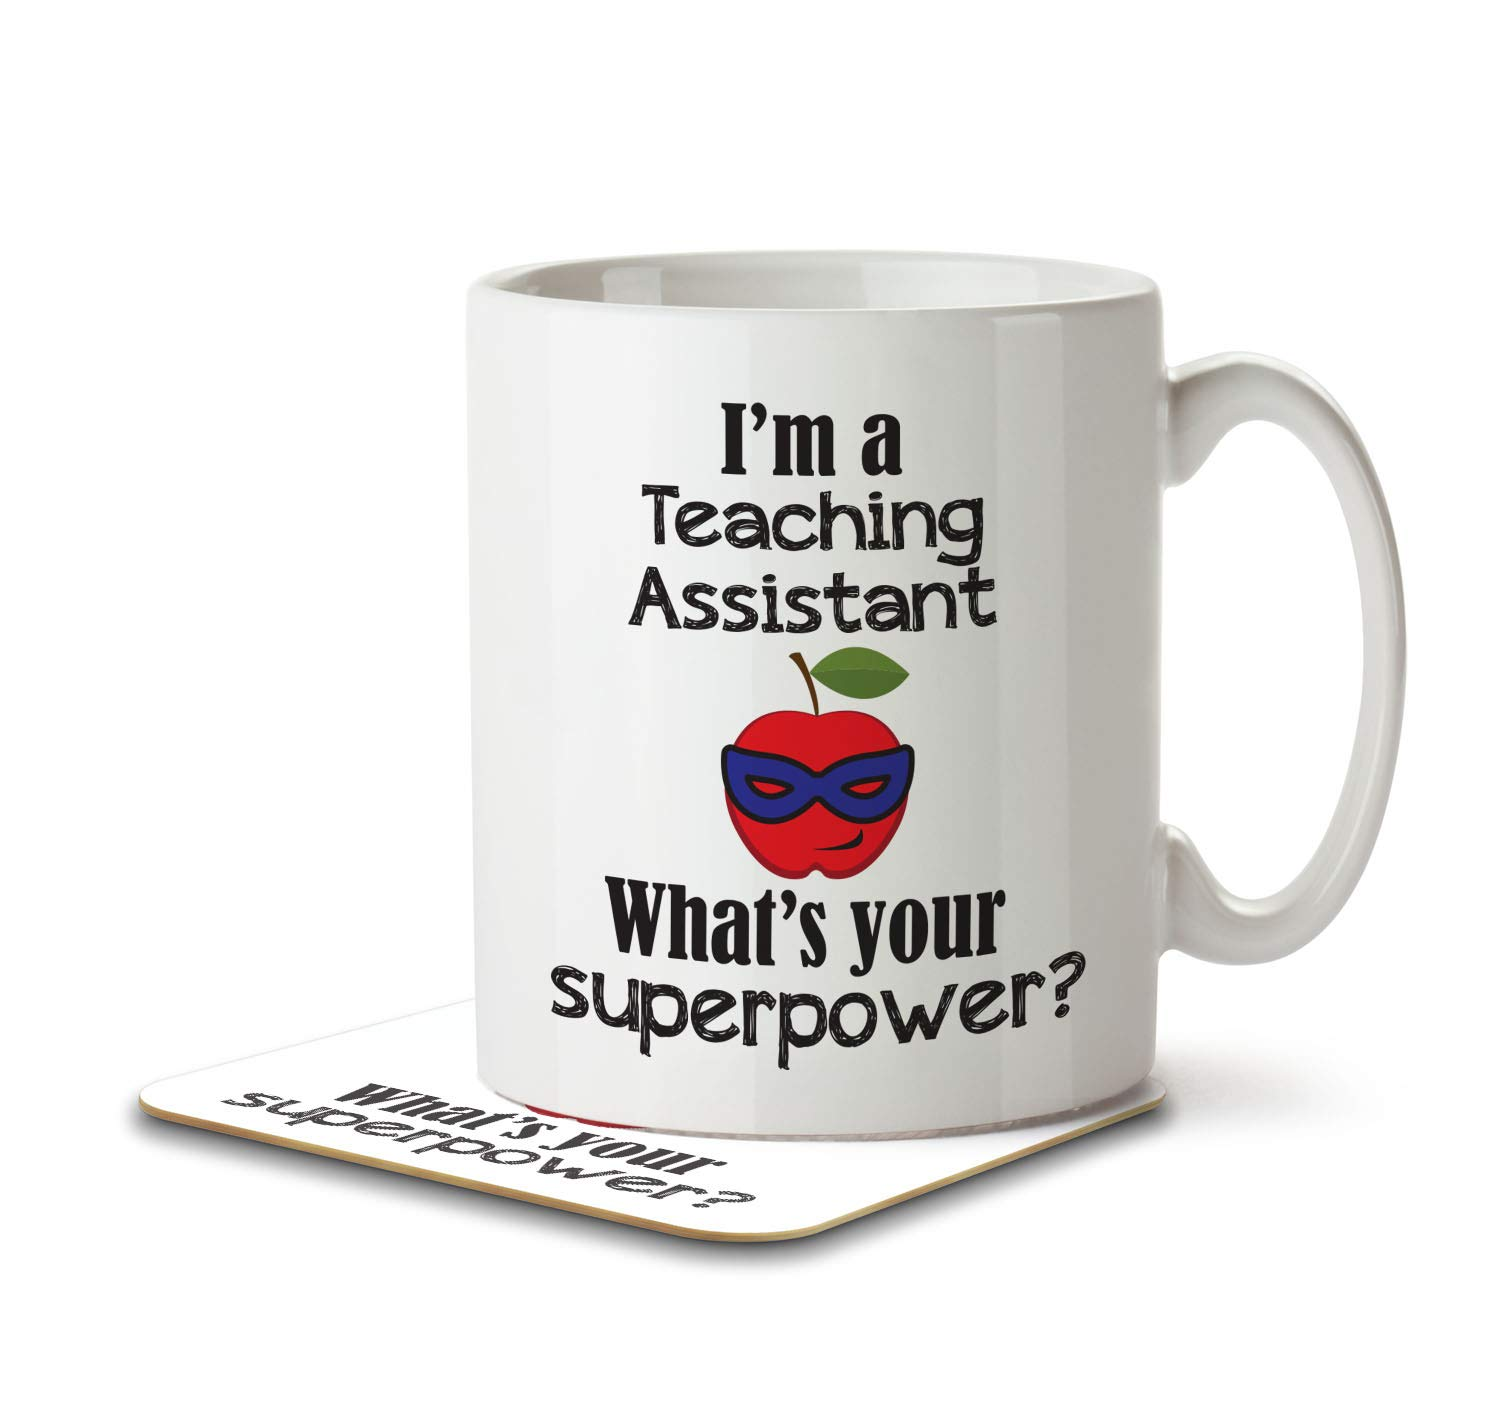 I'm a Teaching Assistant What's Your Superpower? - Mug and Coaster By Inky Penguin The Inky Penguin